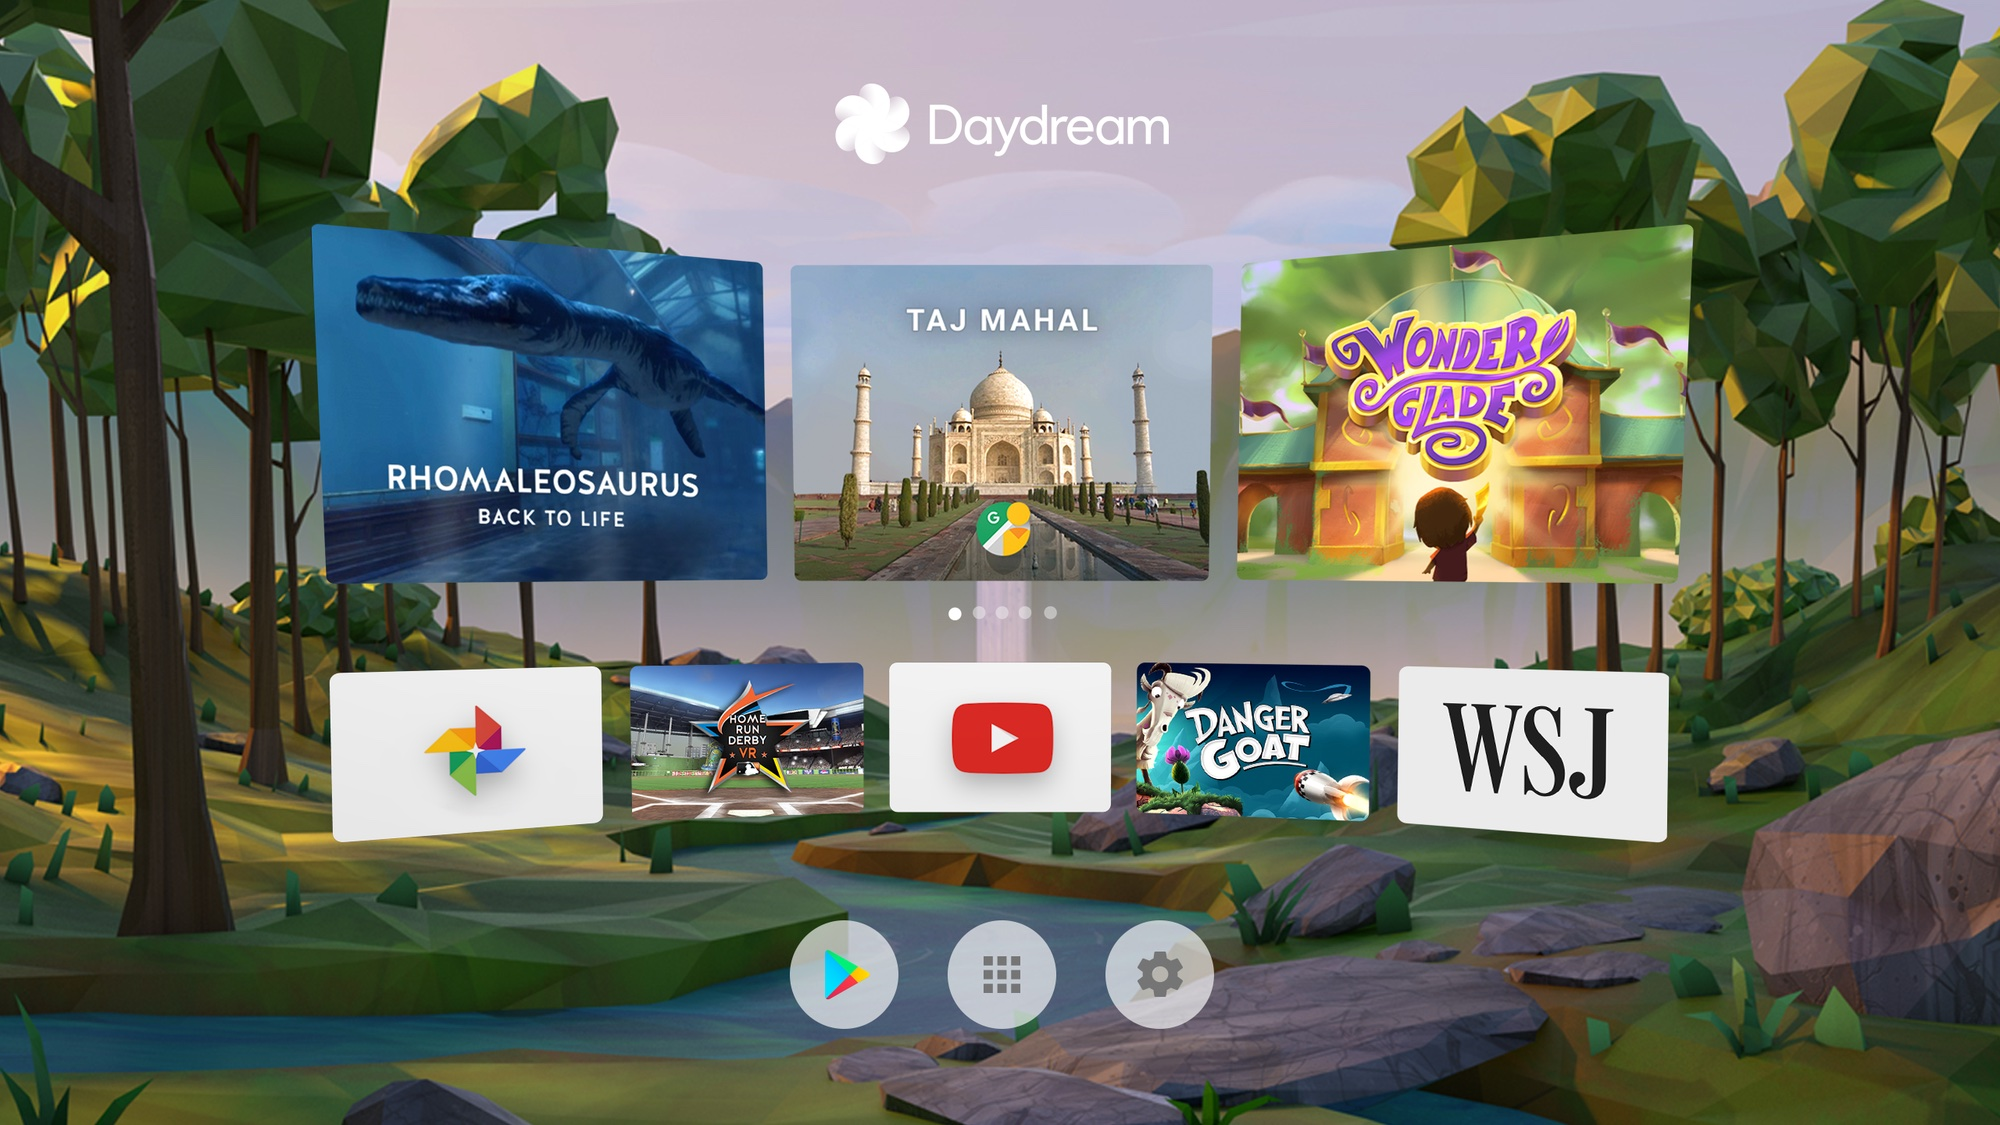 Google Daydream View Home screen 002